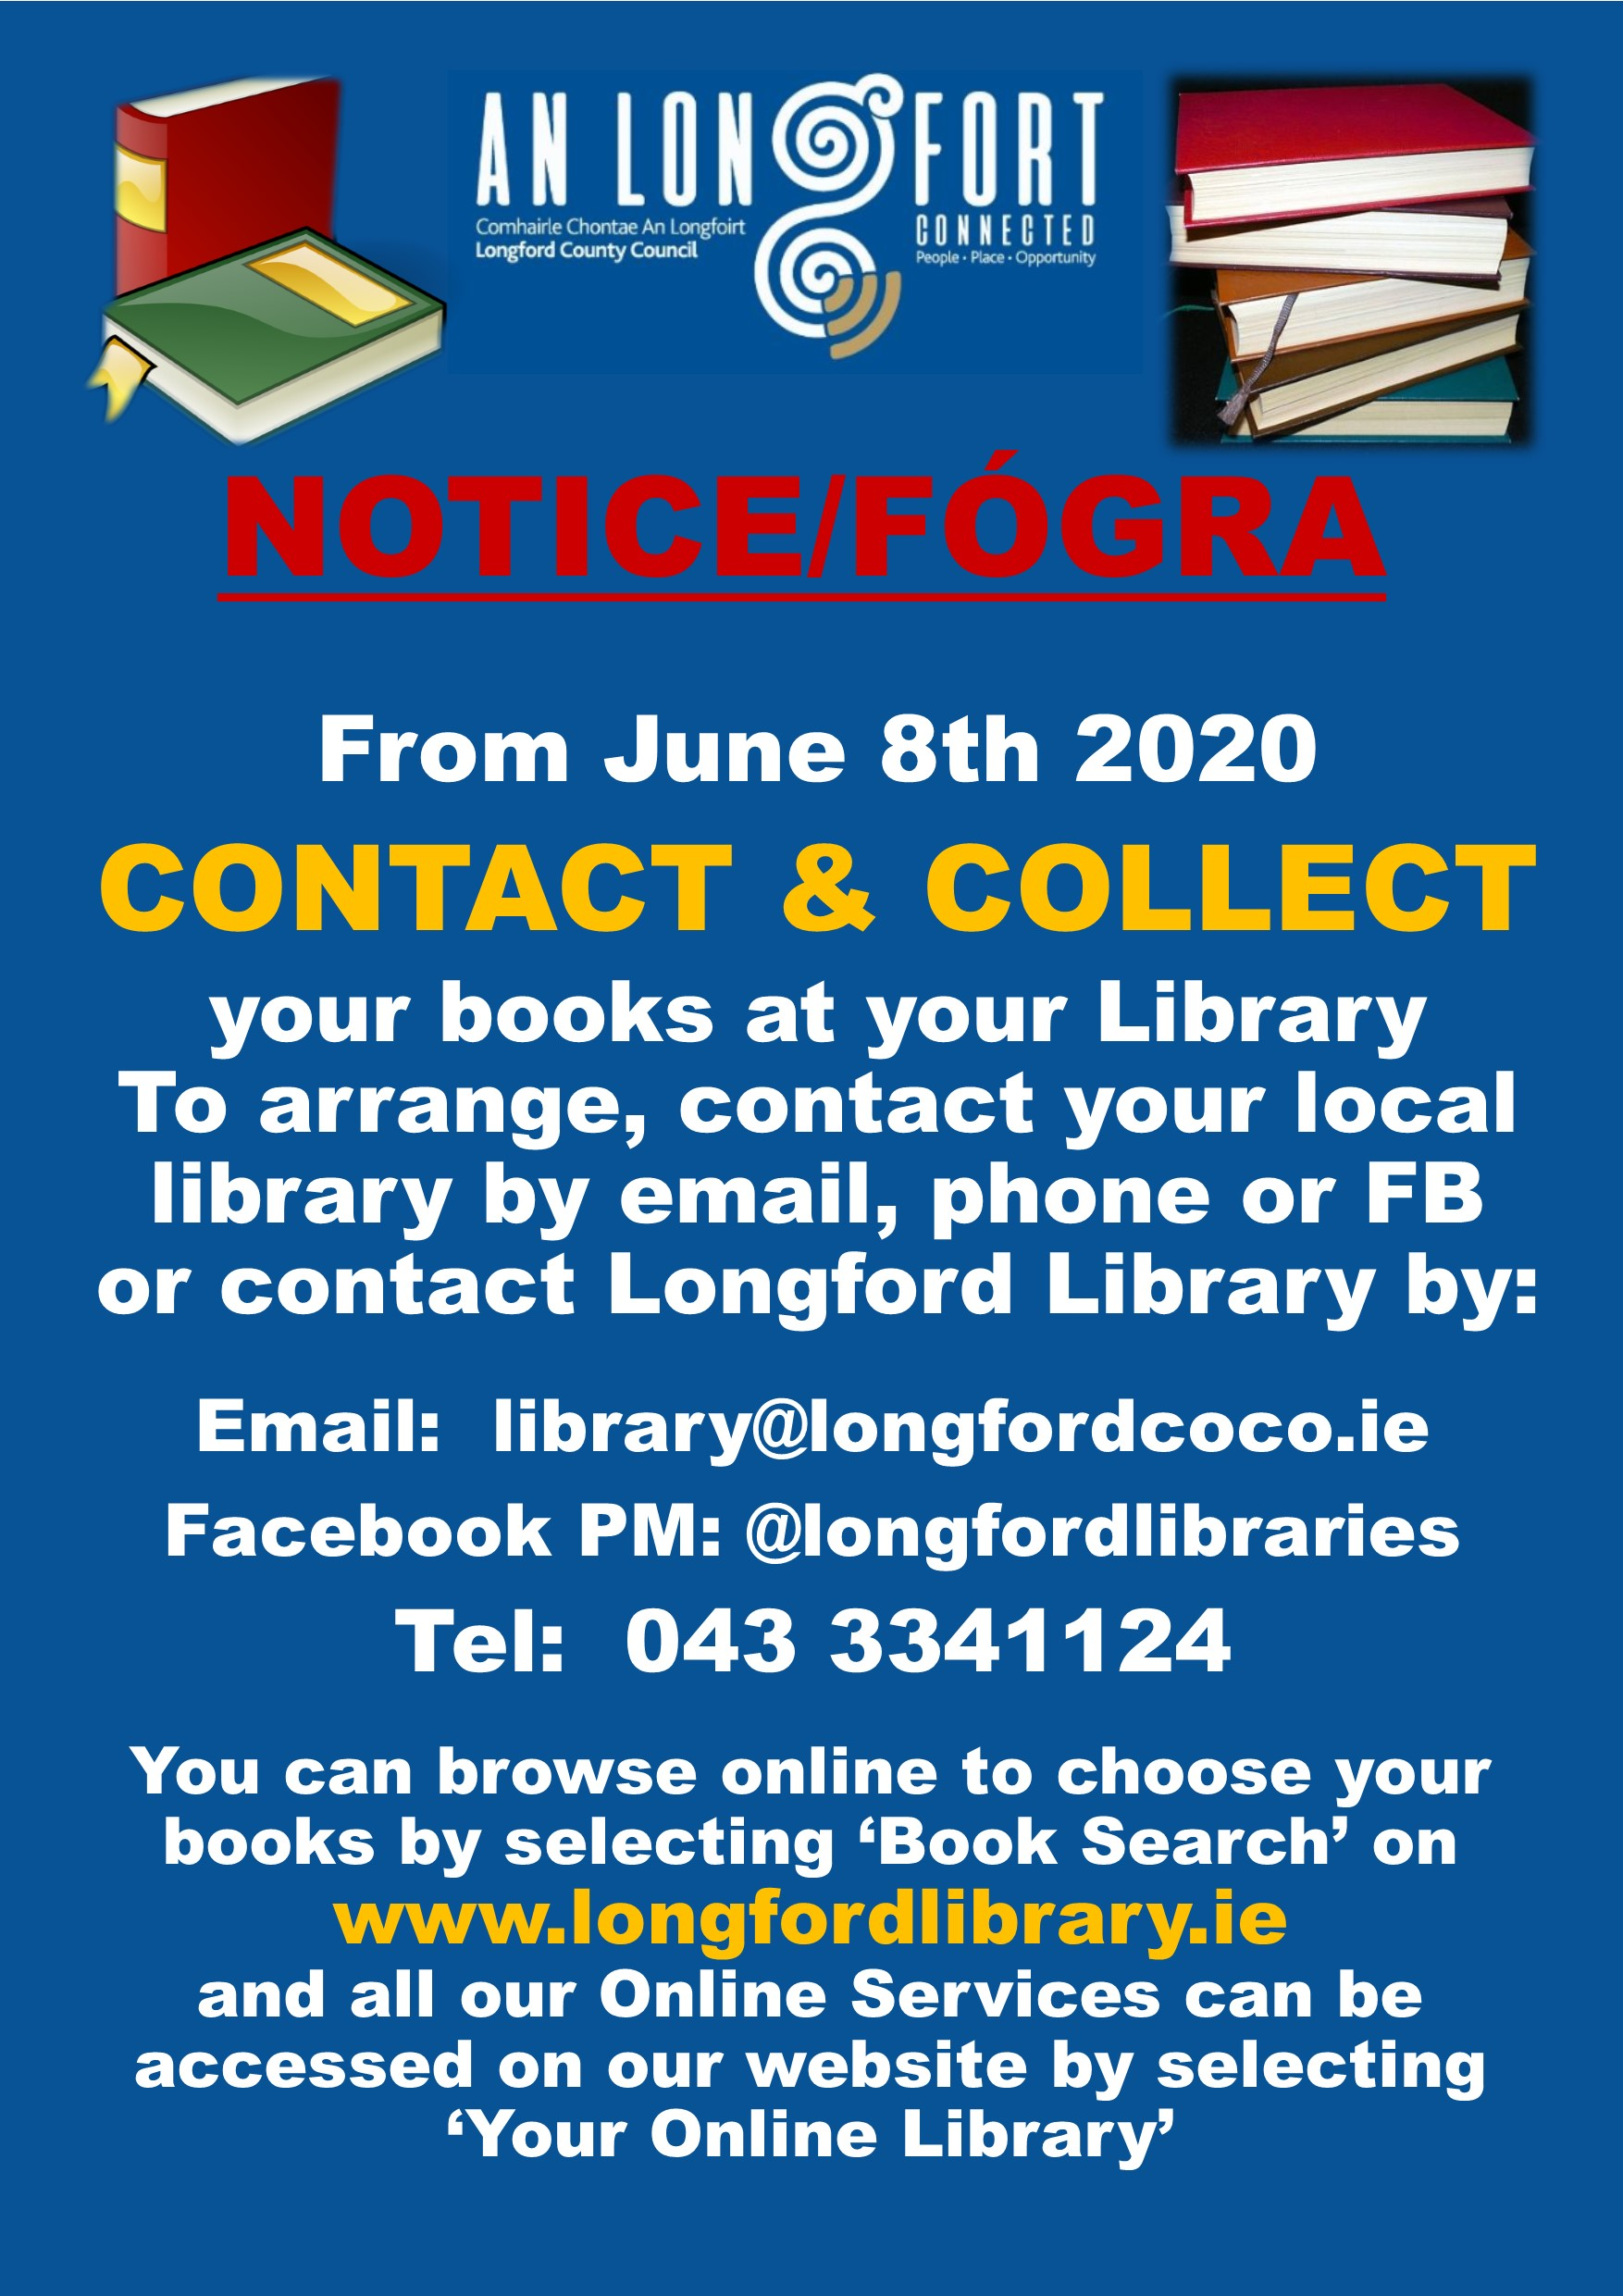 Contact-Collect-8-June-LD-Libraries